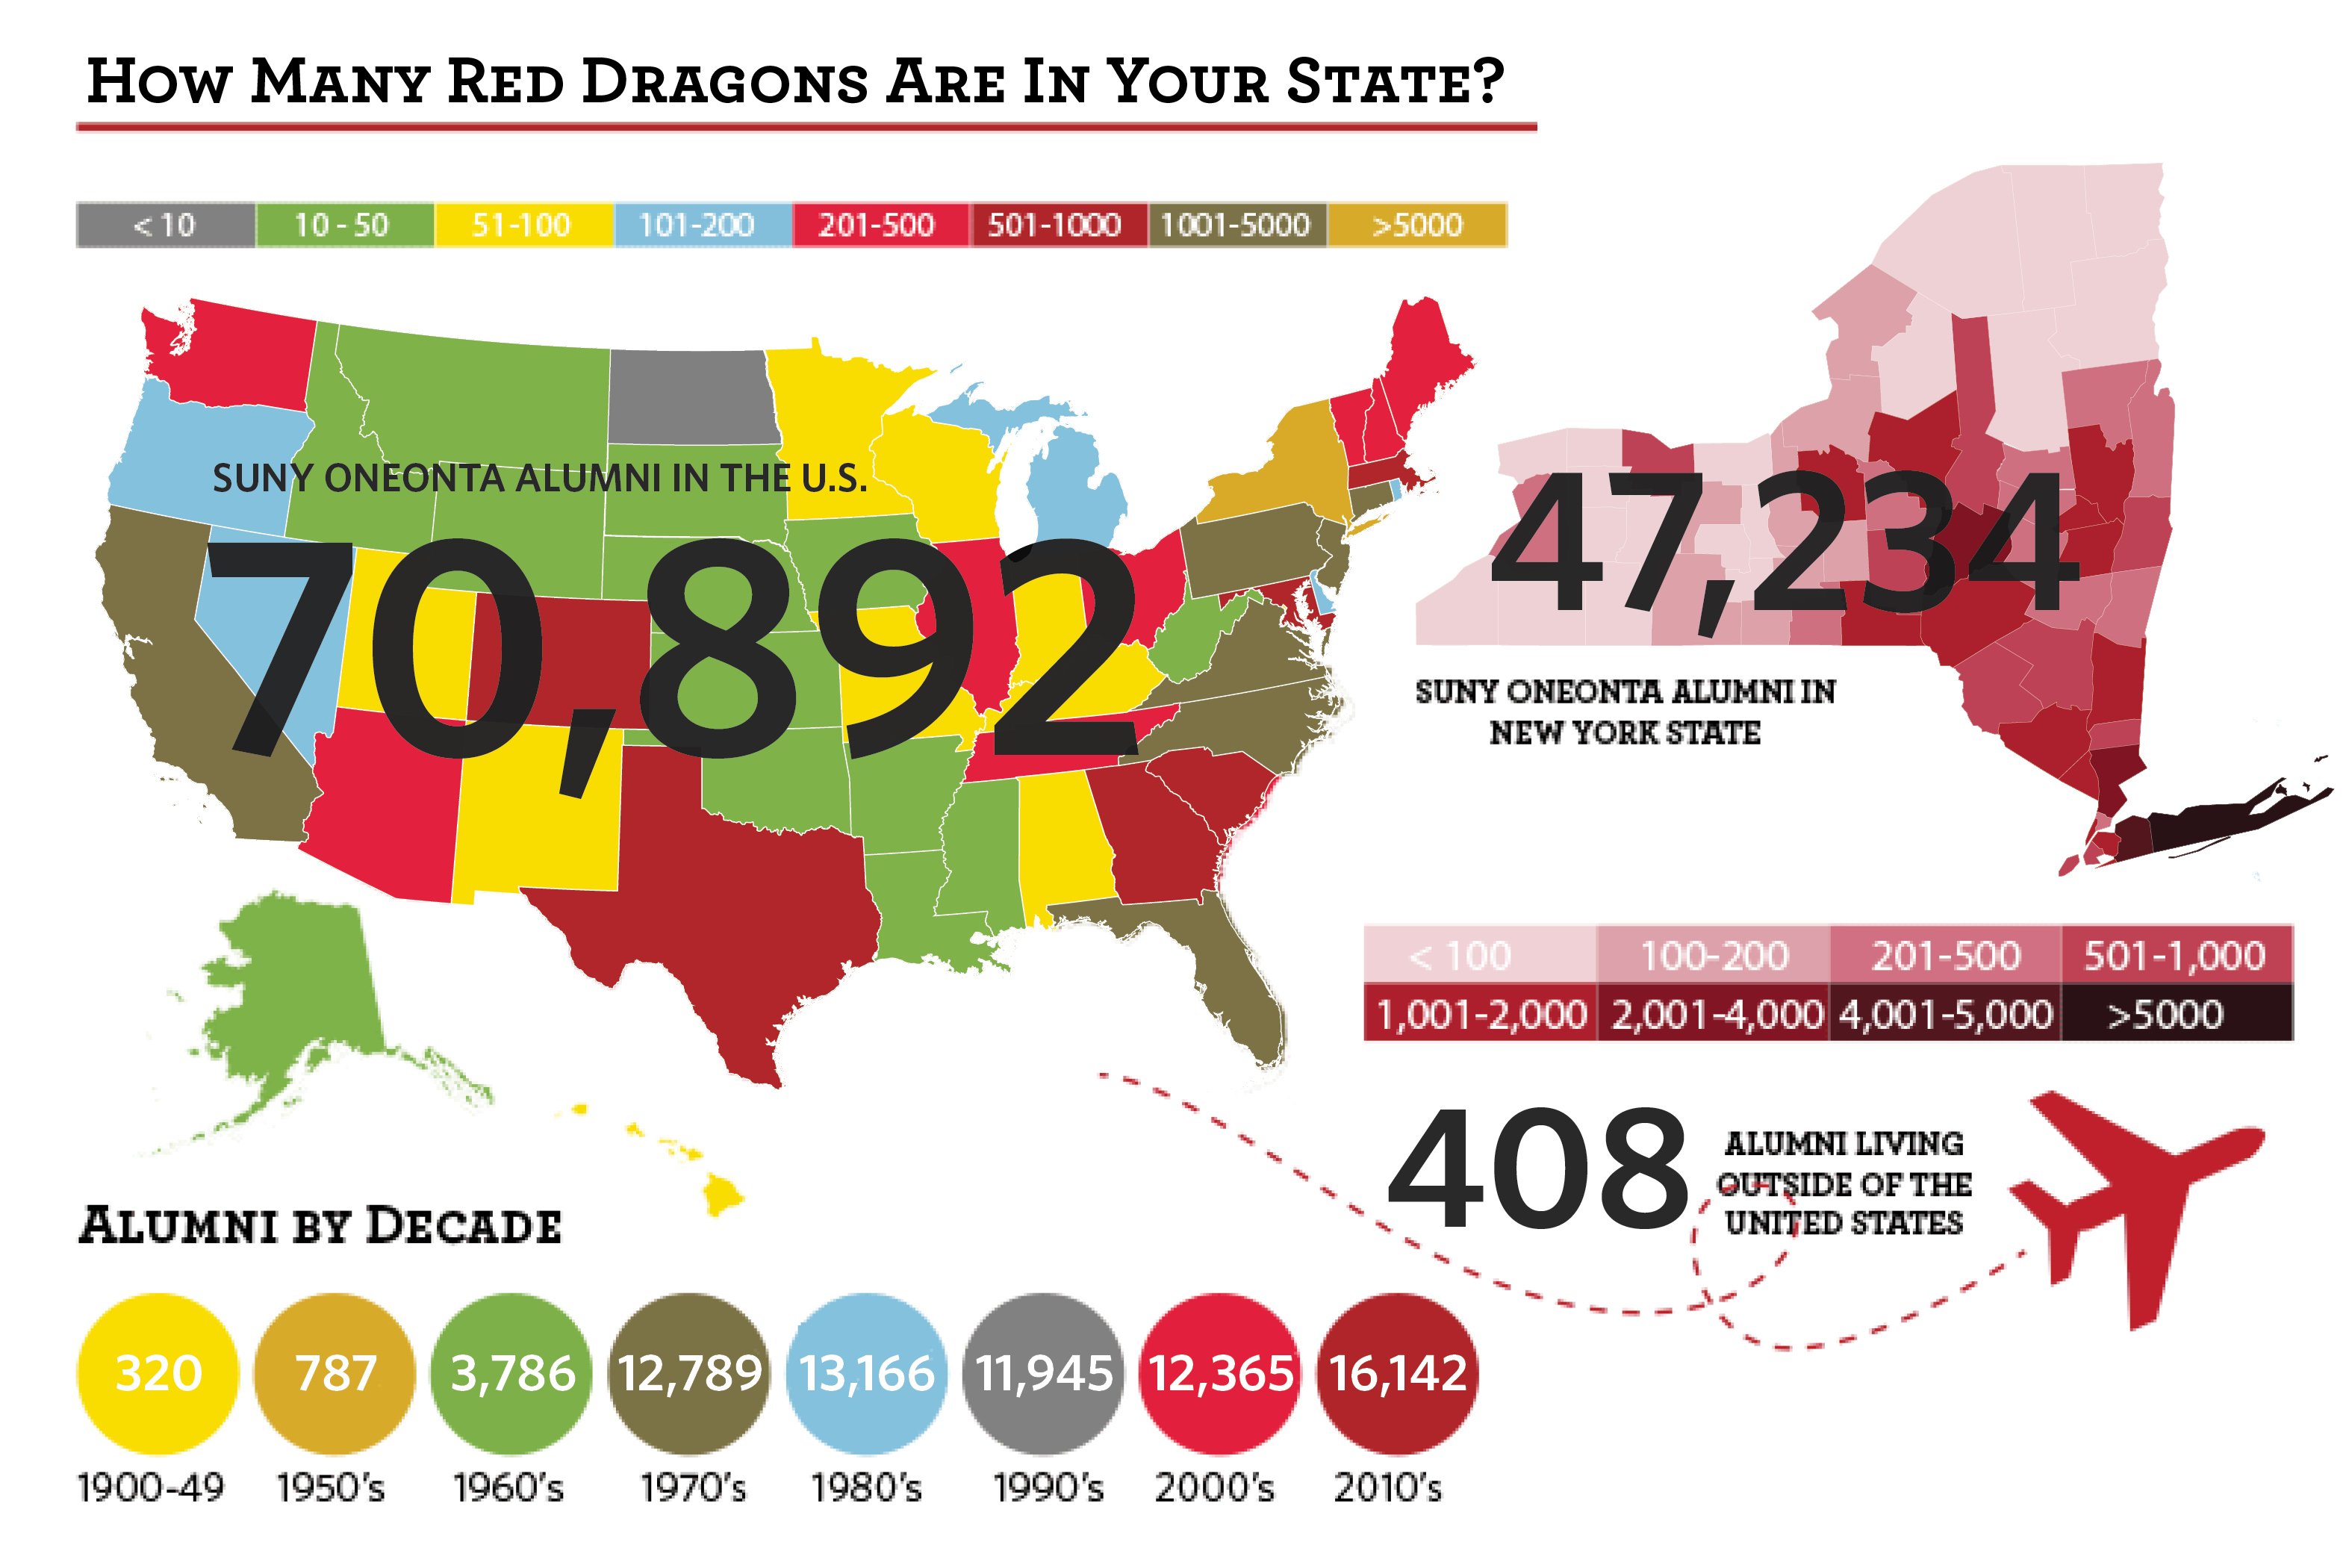 Where the Red Dragons Are Oct 2021